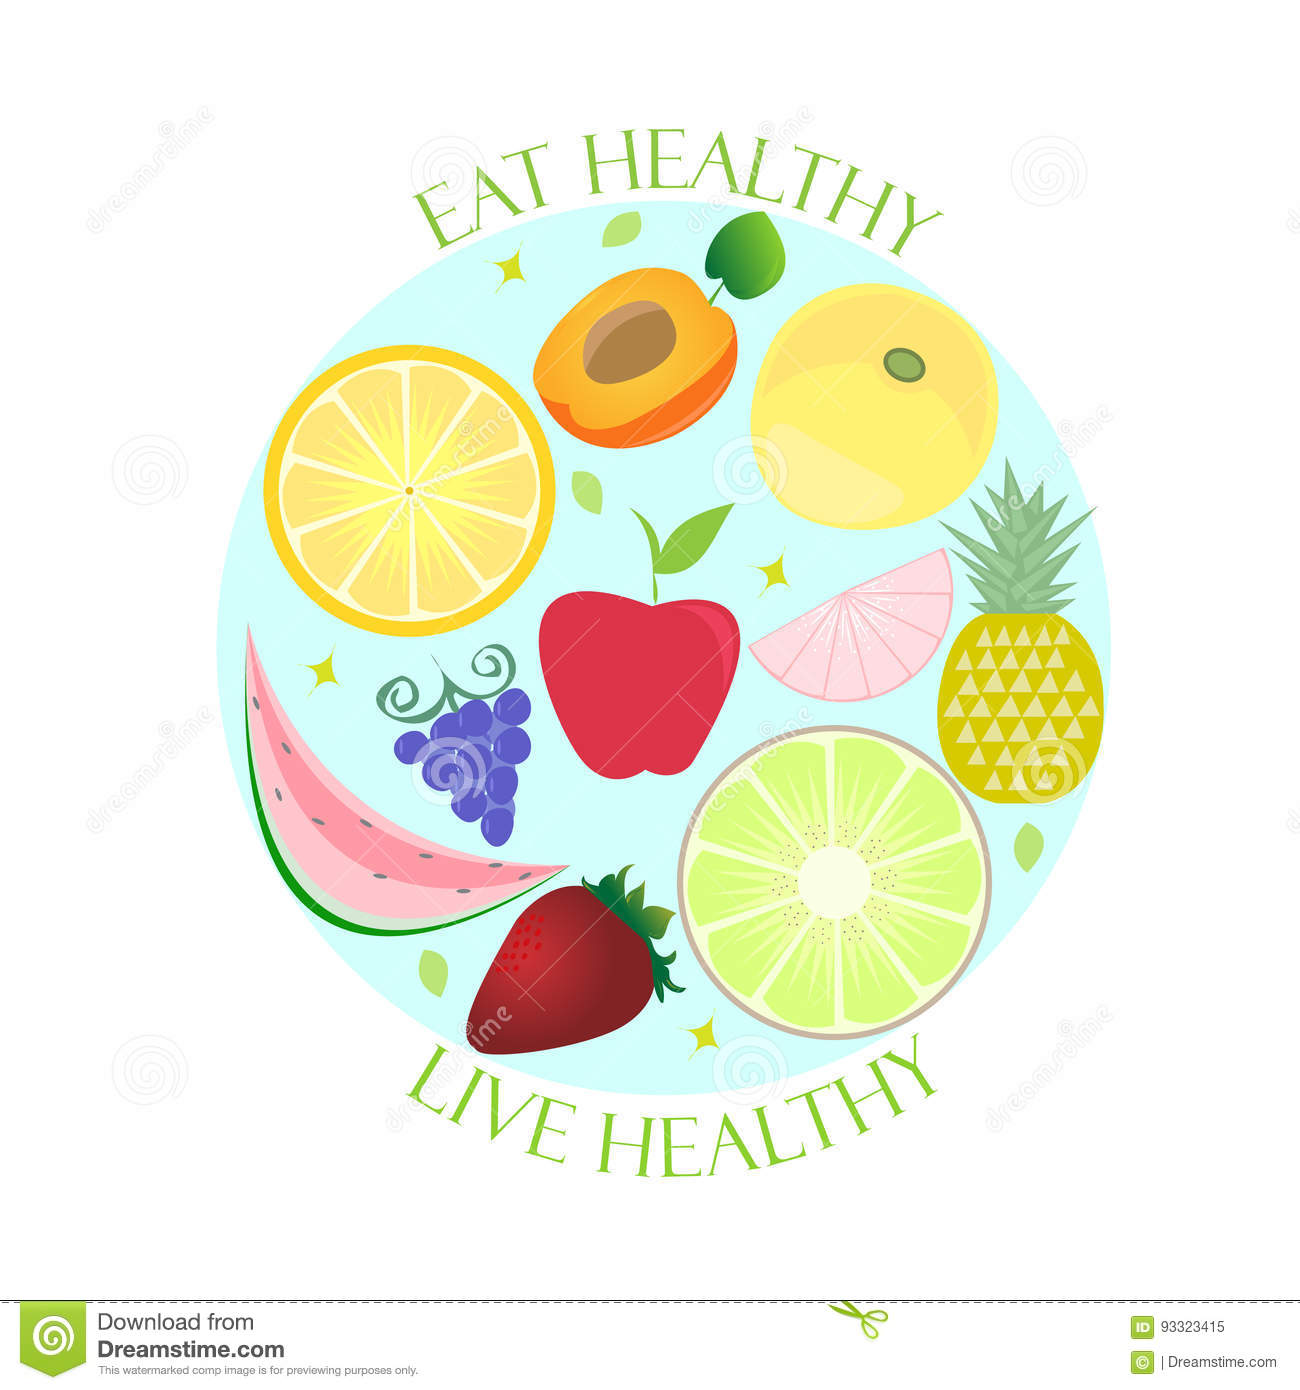 Healthy lifestyle powerpoint template free download wallpaper wheat ppt template source healthy lifestyle poster eat live healthy stock vector toneelgroepblik Image collections